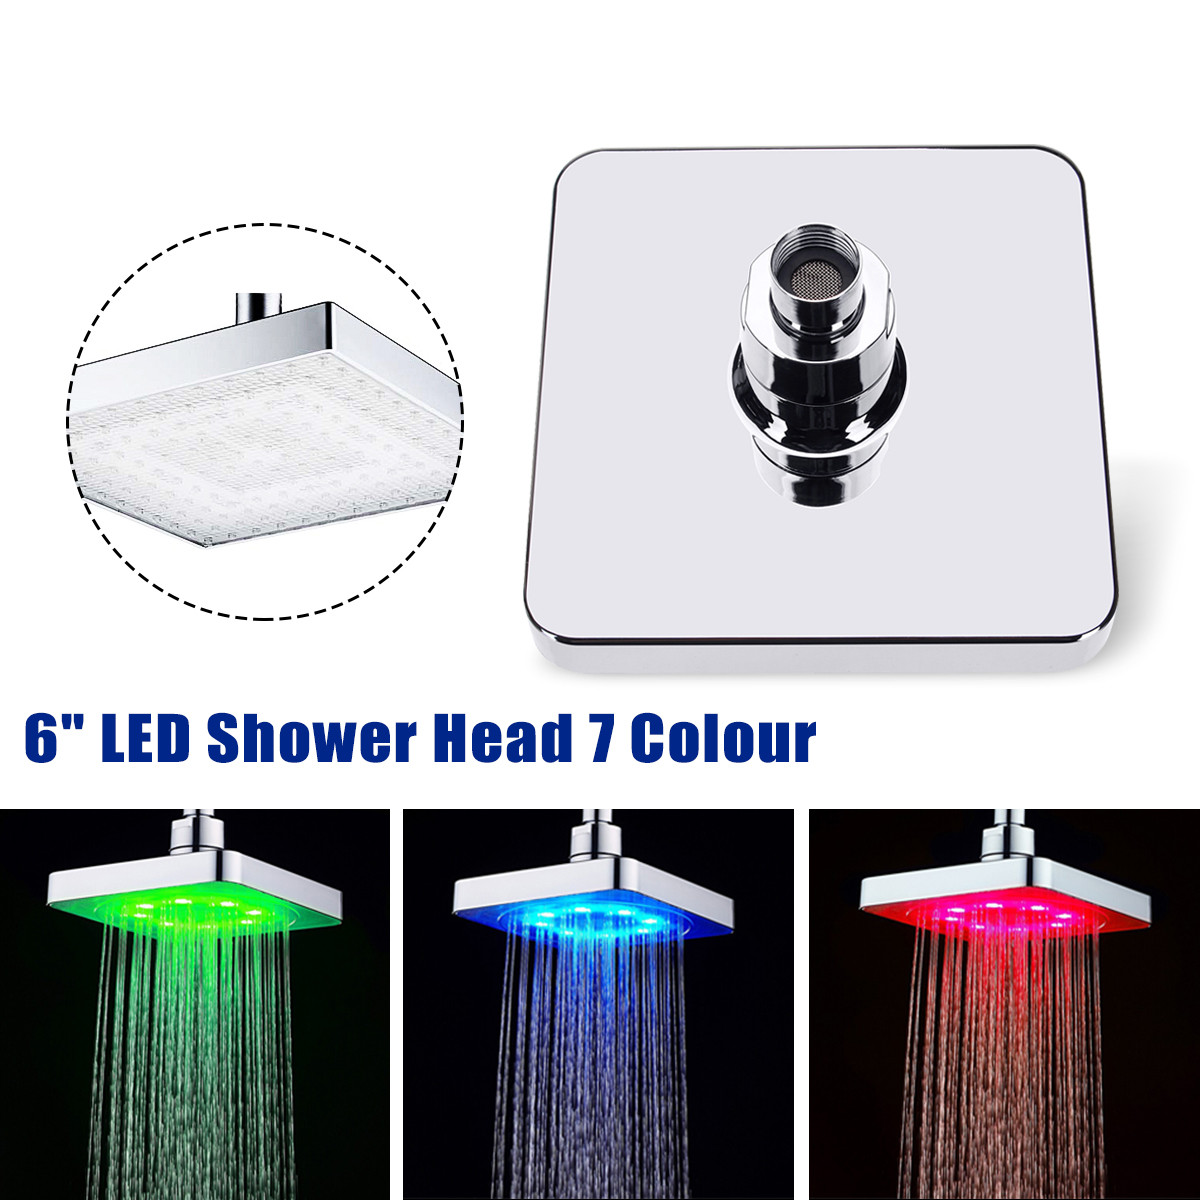 6 Inch ABS Square Adjudtable Rainfall LED Changing Shower Head Water Flow Spray Temperature Sensor Chrome Finish